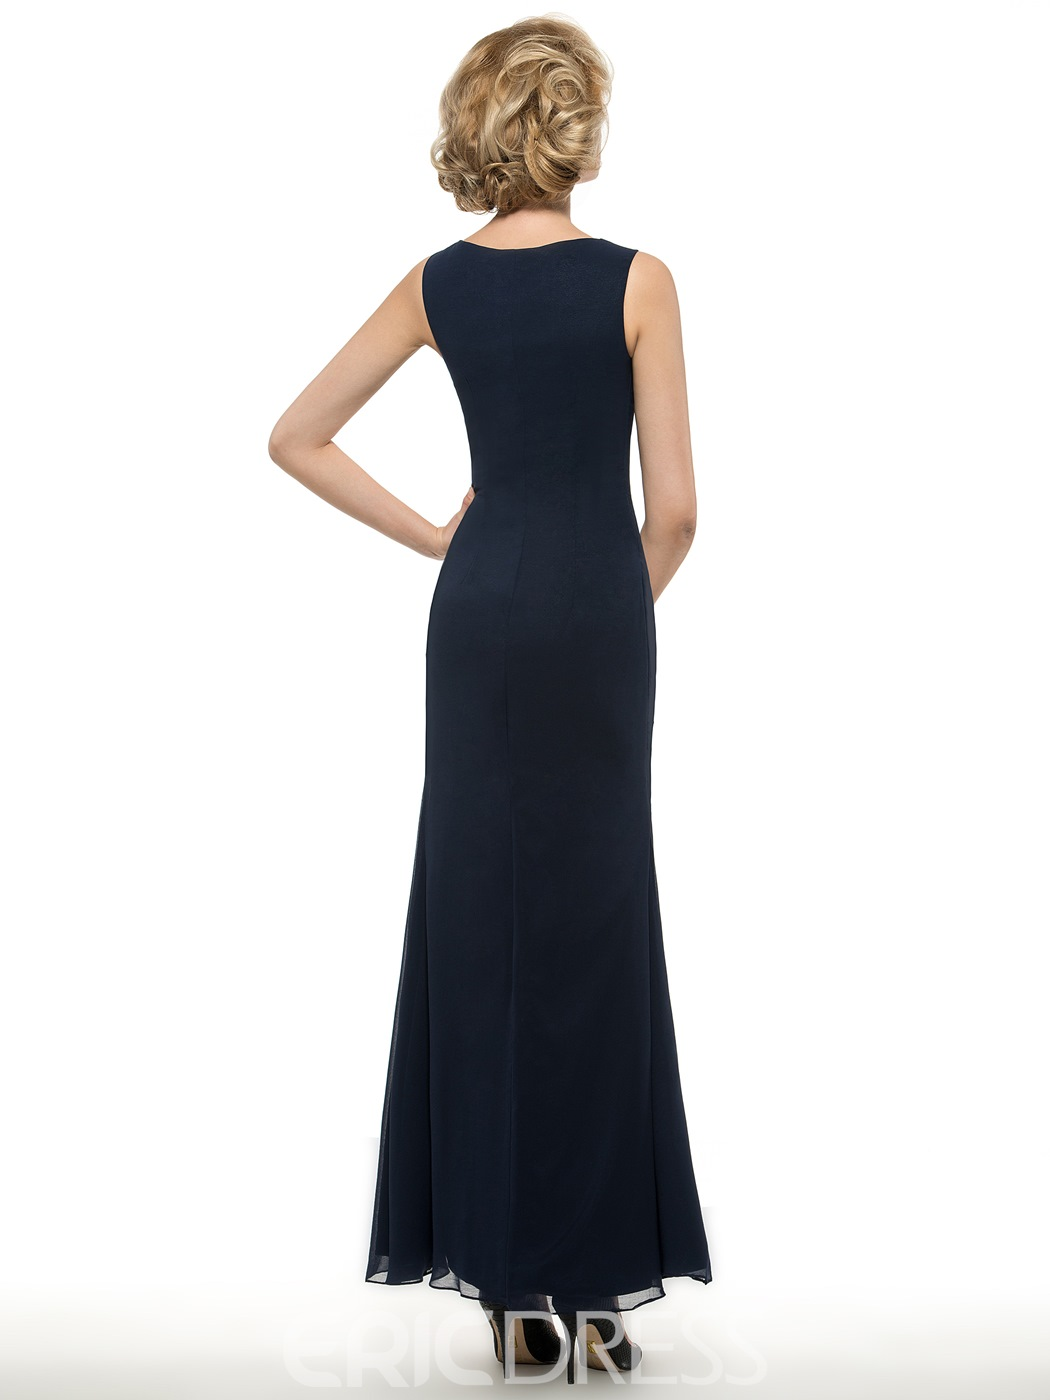 Ericdress Elegant Sheath Long Mother Of The Bride Dress